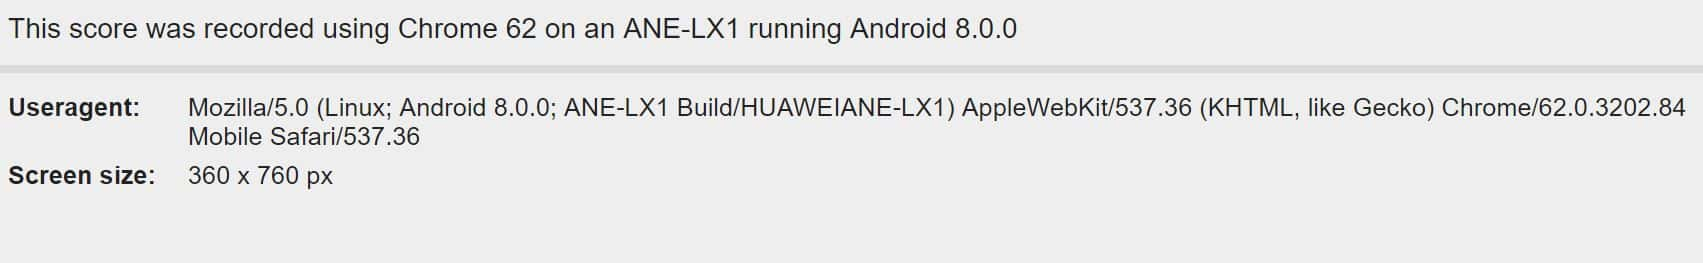 Huawei Phone Benchmarked With A 19:9 Display & Android 8.0